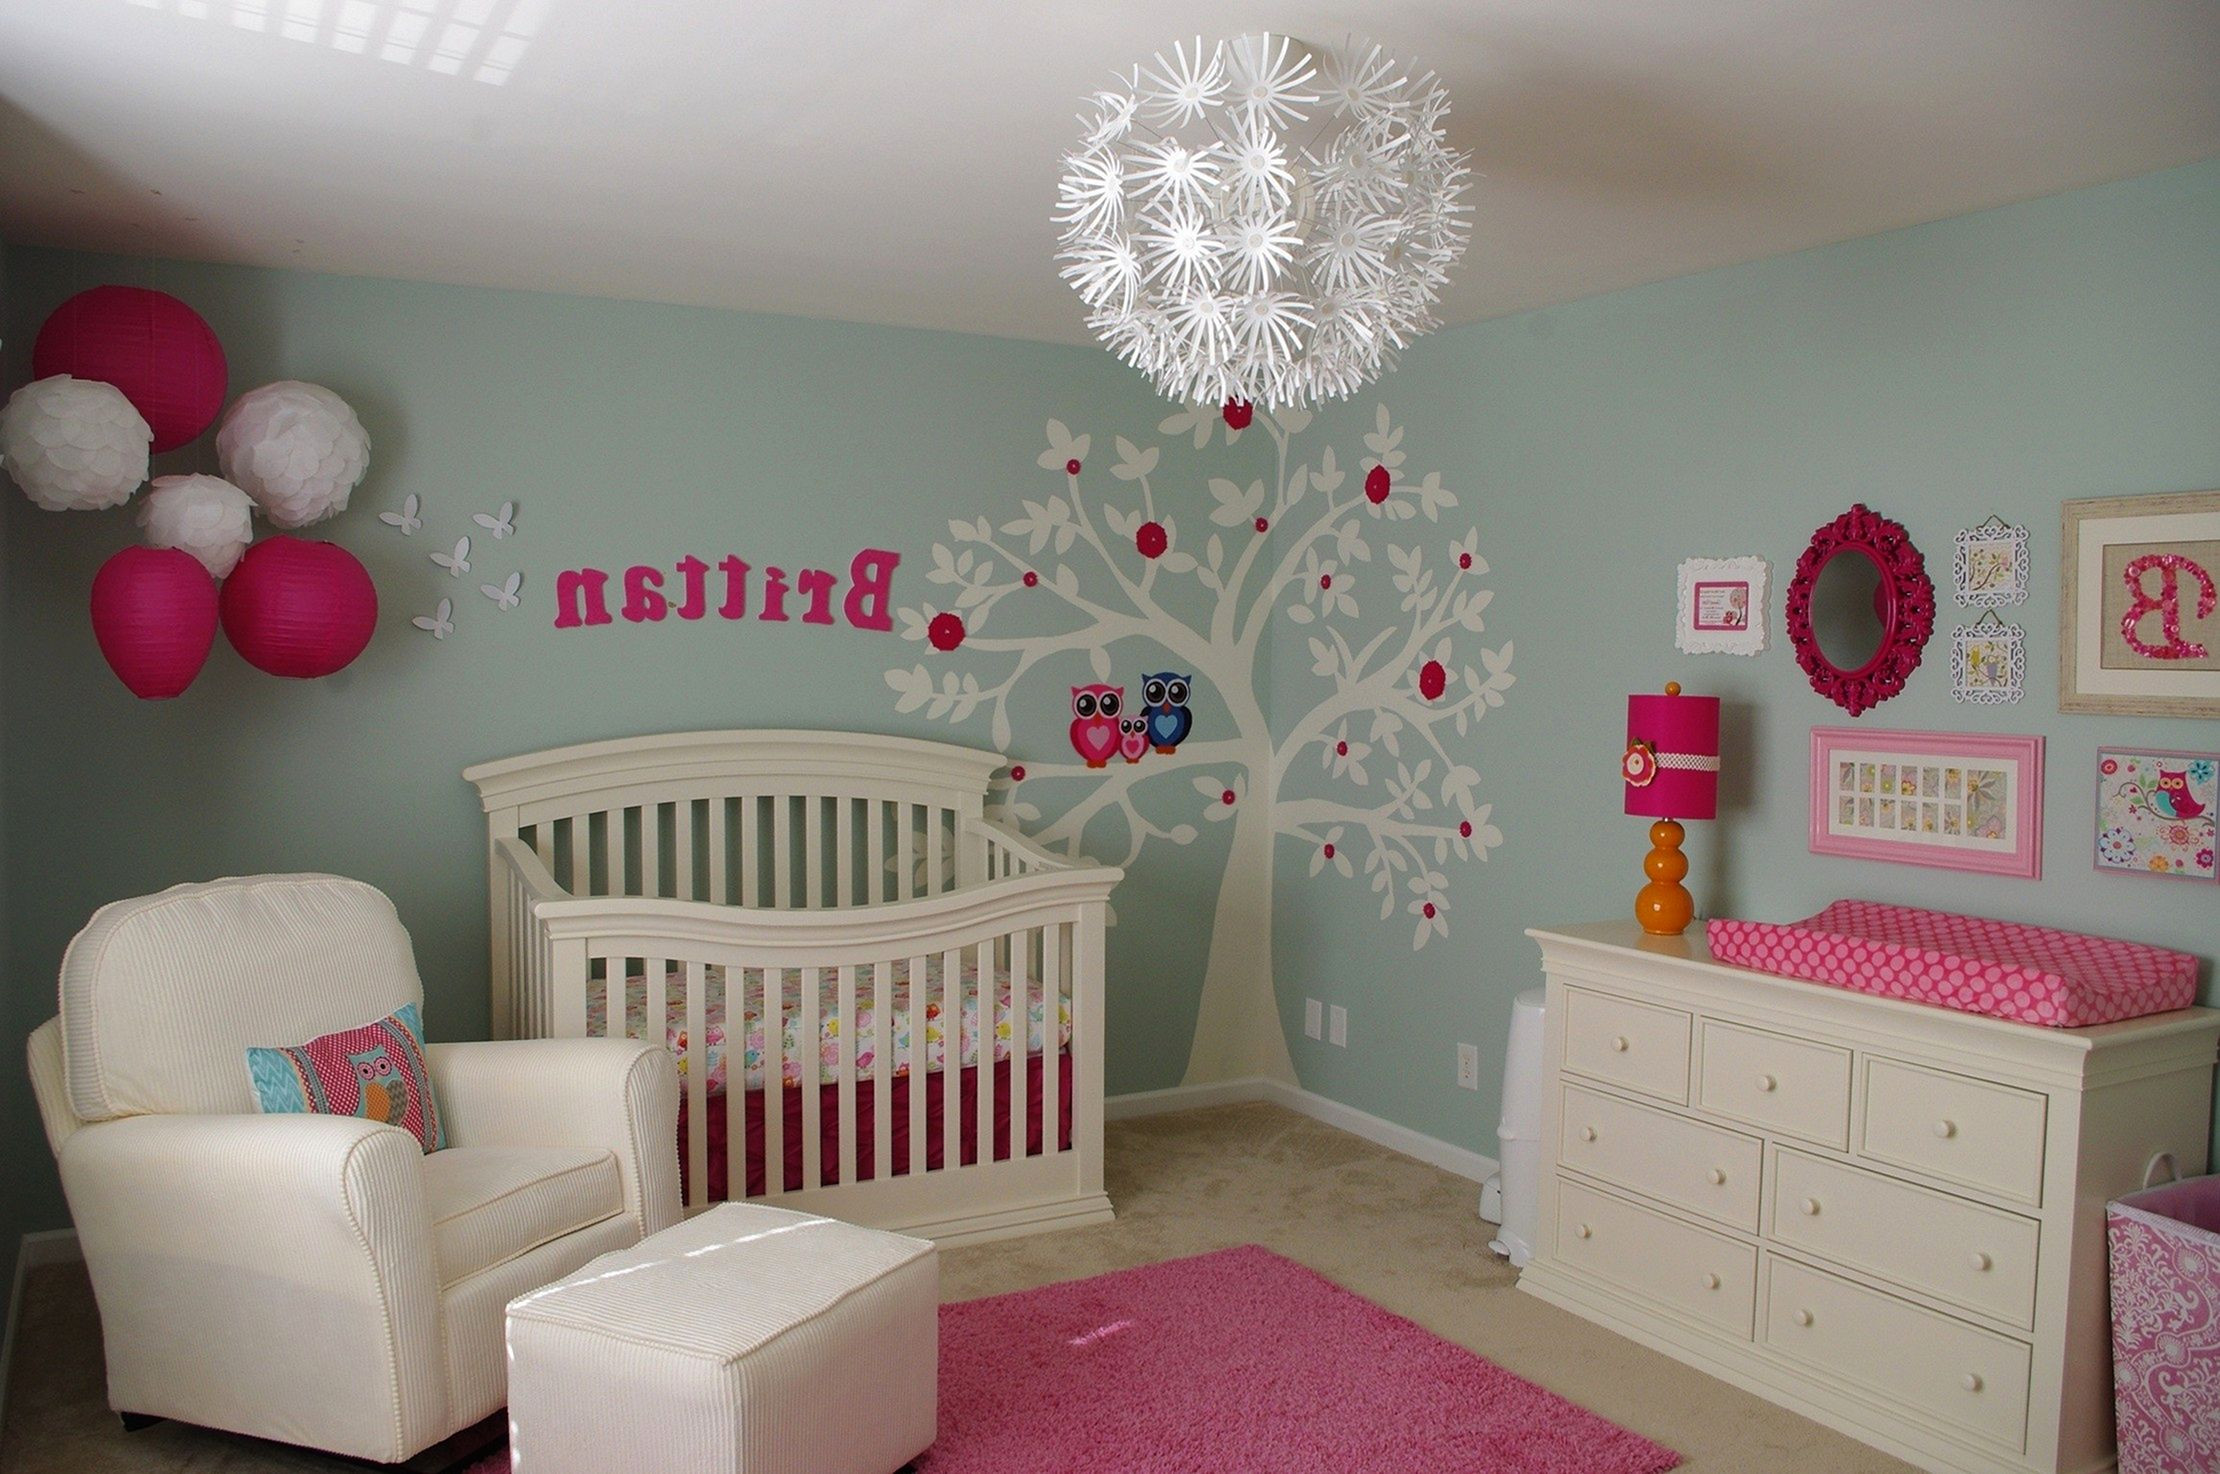 Best ideas about DIY Baby Rooms Ideas . Save or Pin DIY Baby Room Decor Ideas For Girls DIY Baby Room Decor Now.